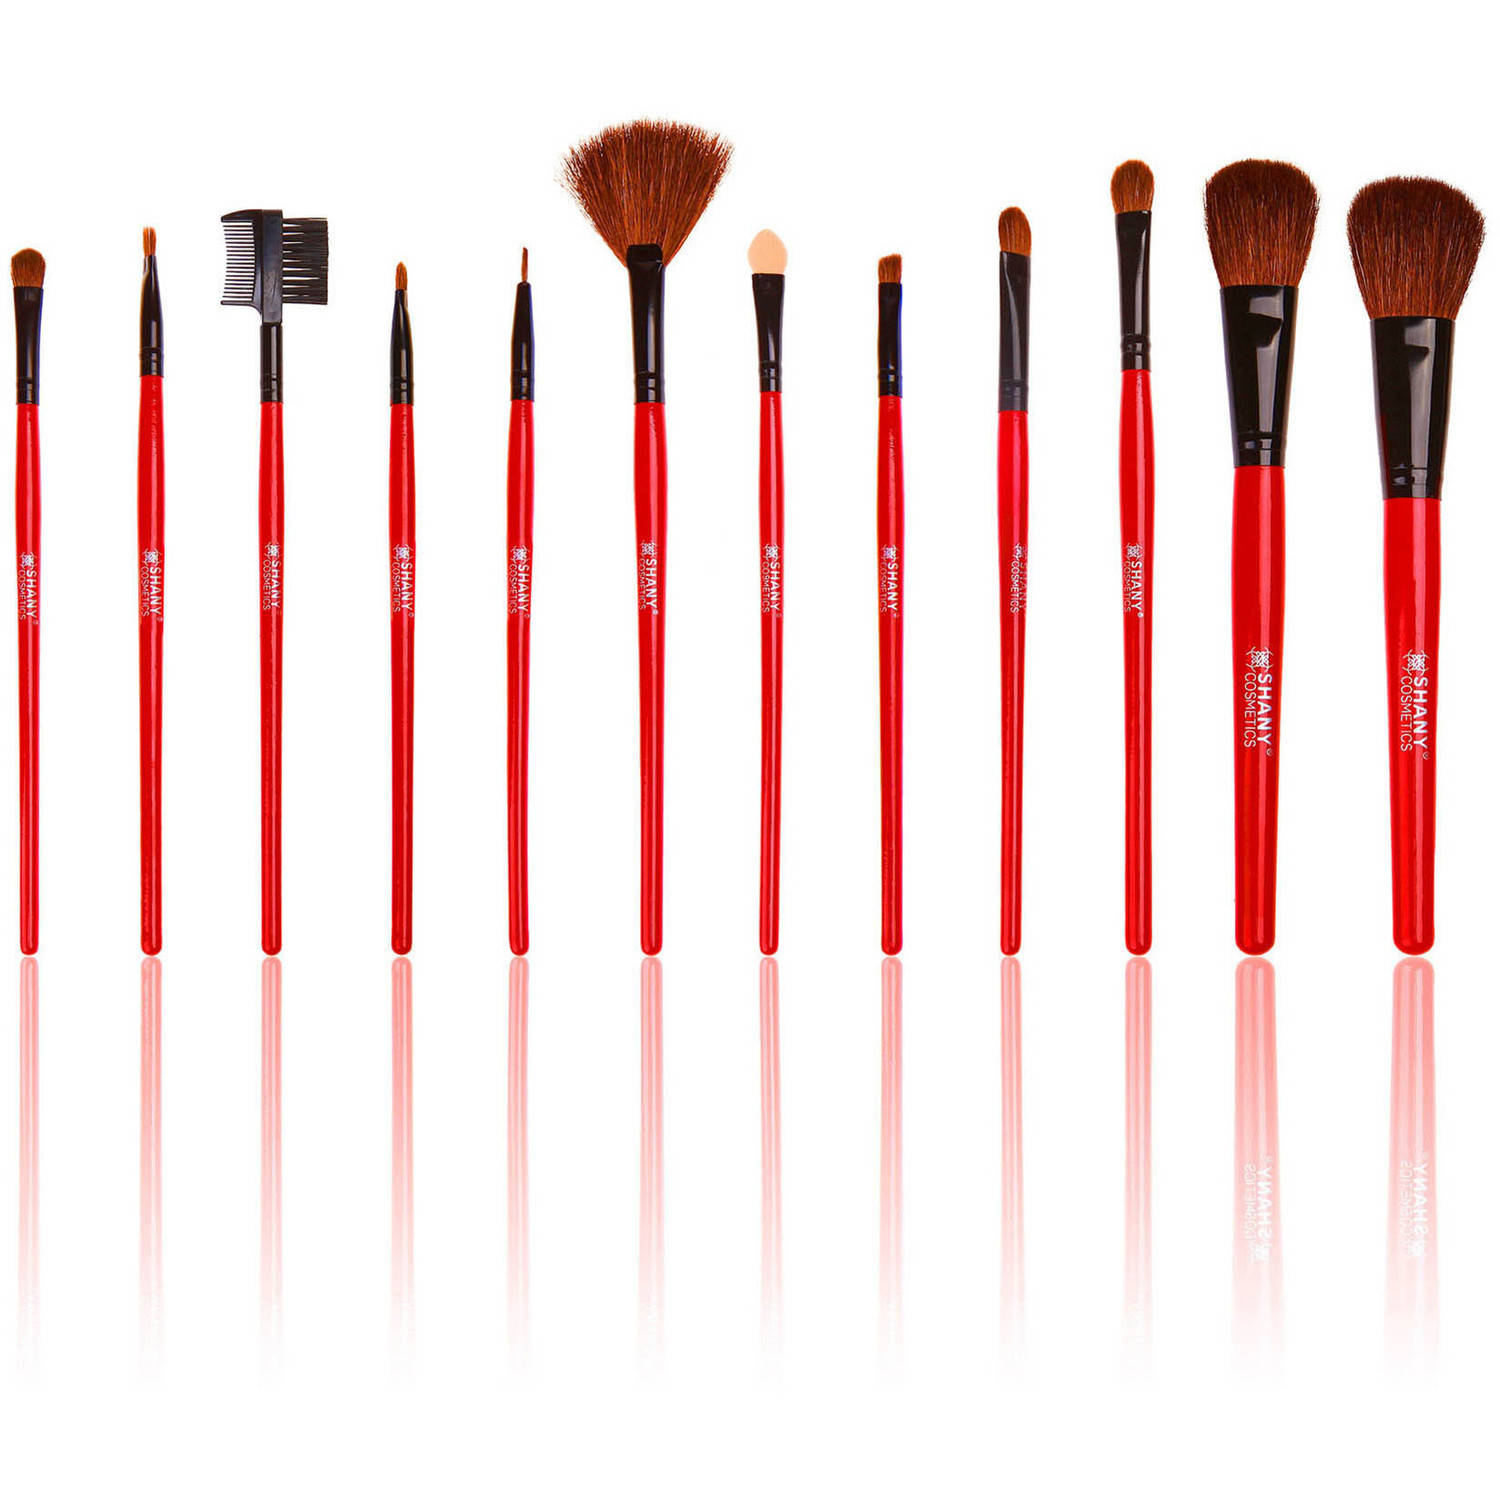 SHANY Professional Quality Cosmetic Makeup Brush Set with Pouch (13 Count)